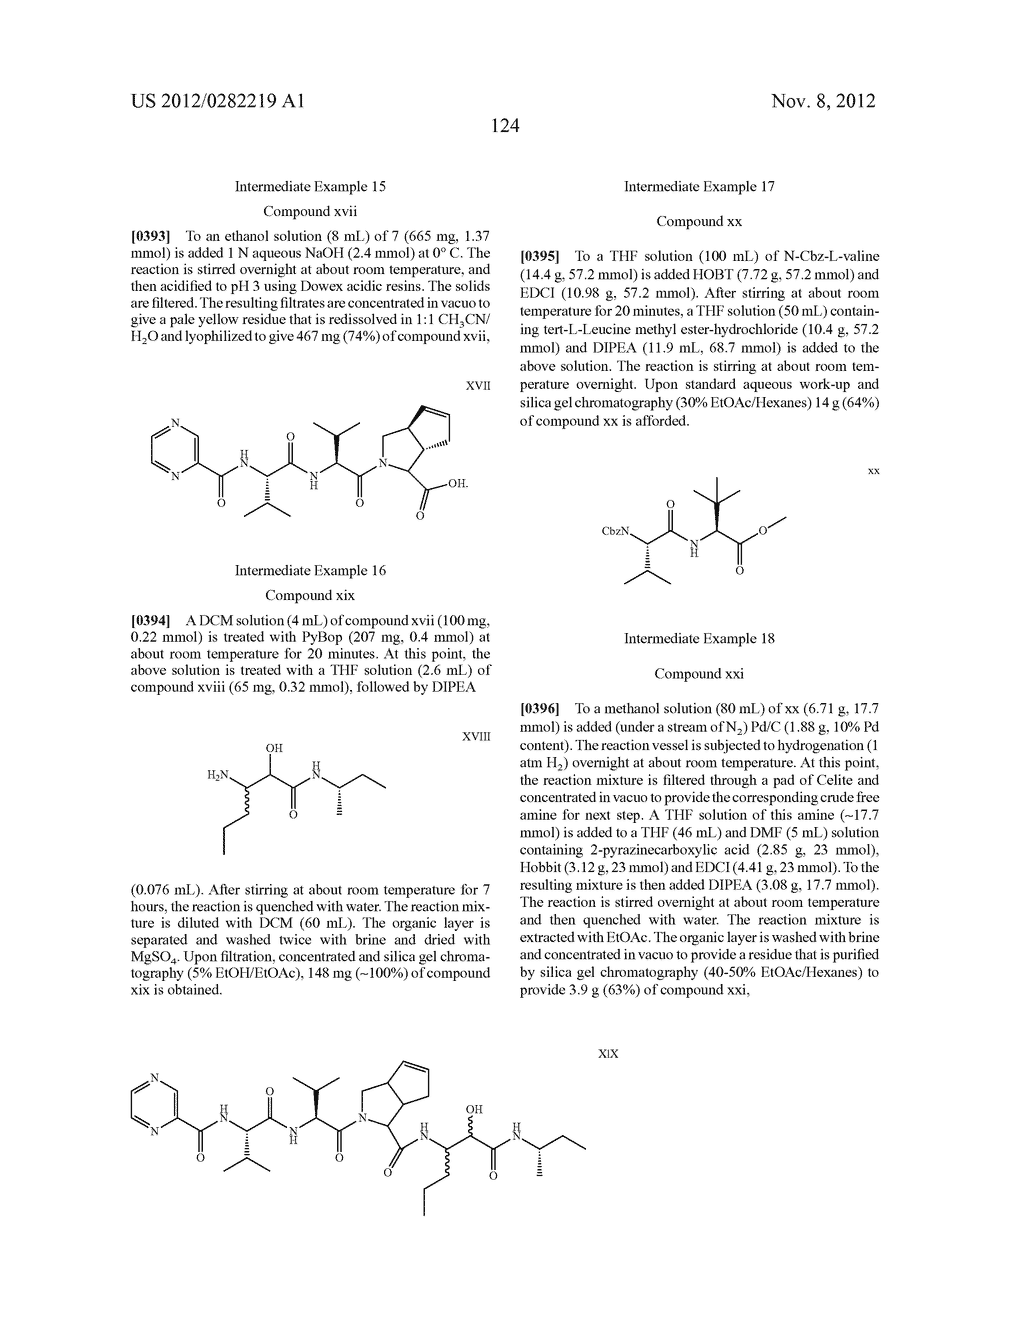 PEPTIDOMIMETIC PROTEASE INHIBITORS - diagram, schematic, and image 139